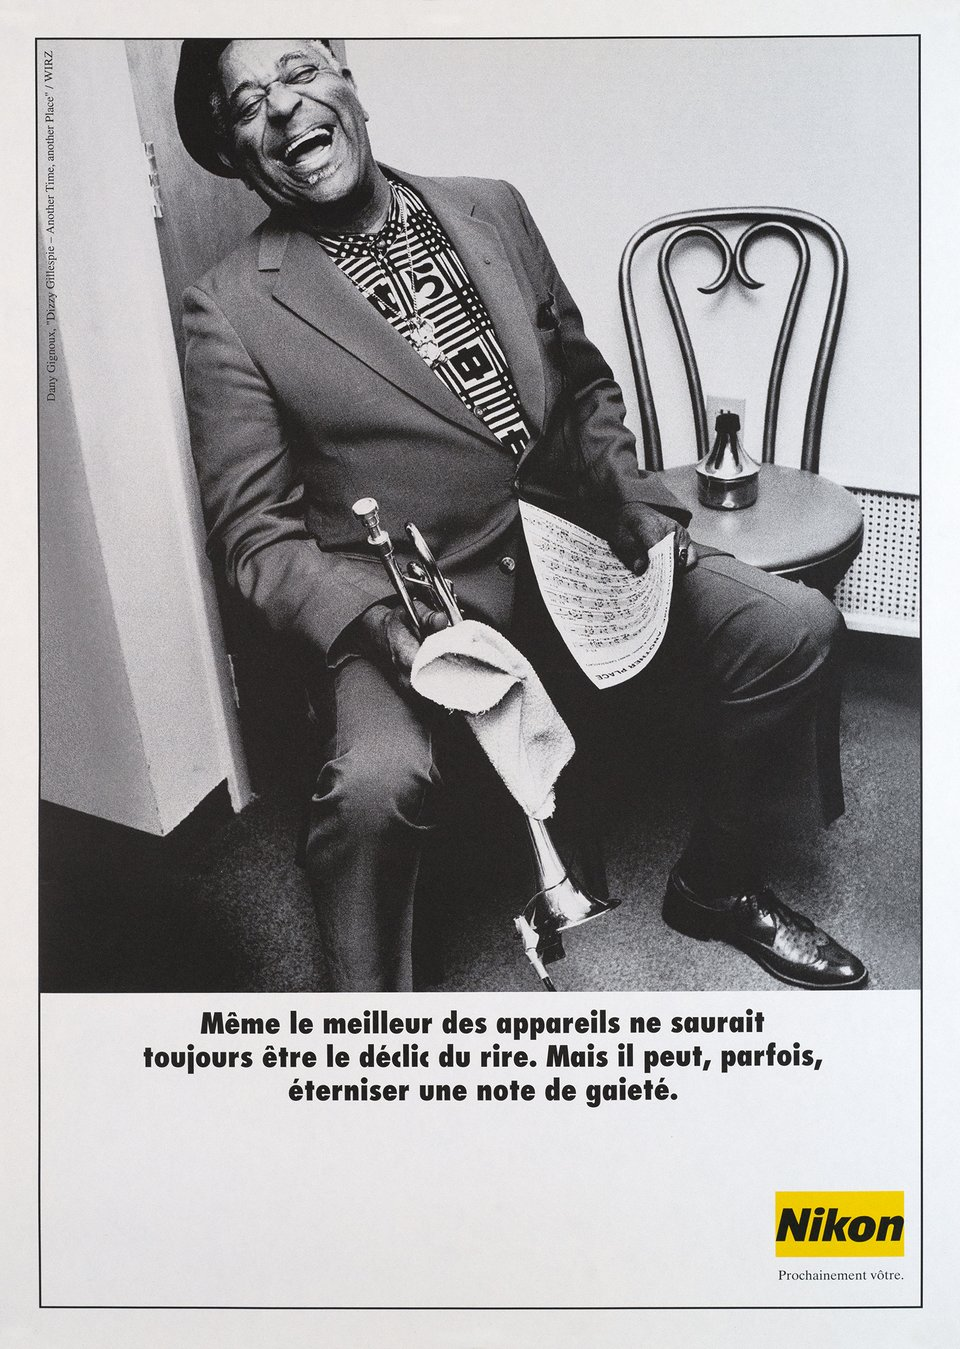 Dizzy Gillespie at the Smithsonian Institute, Nikon – Vintage poster – Dany GIGNOUX – 1990